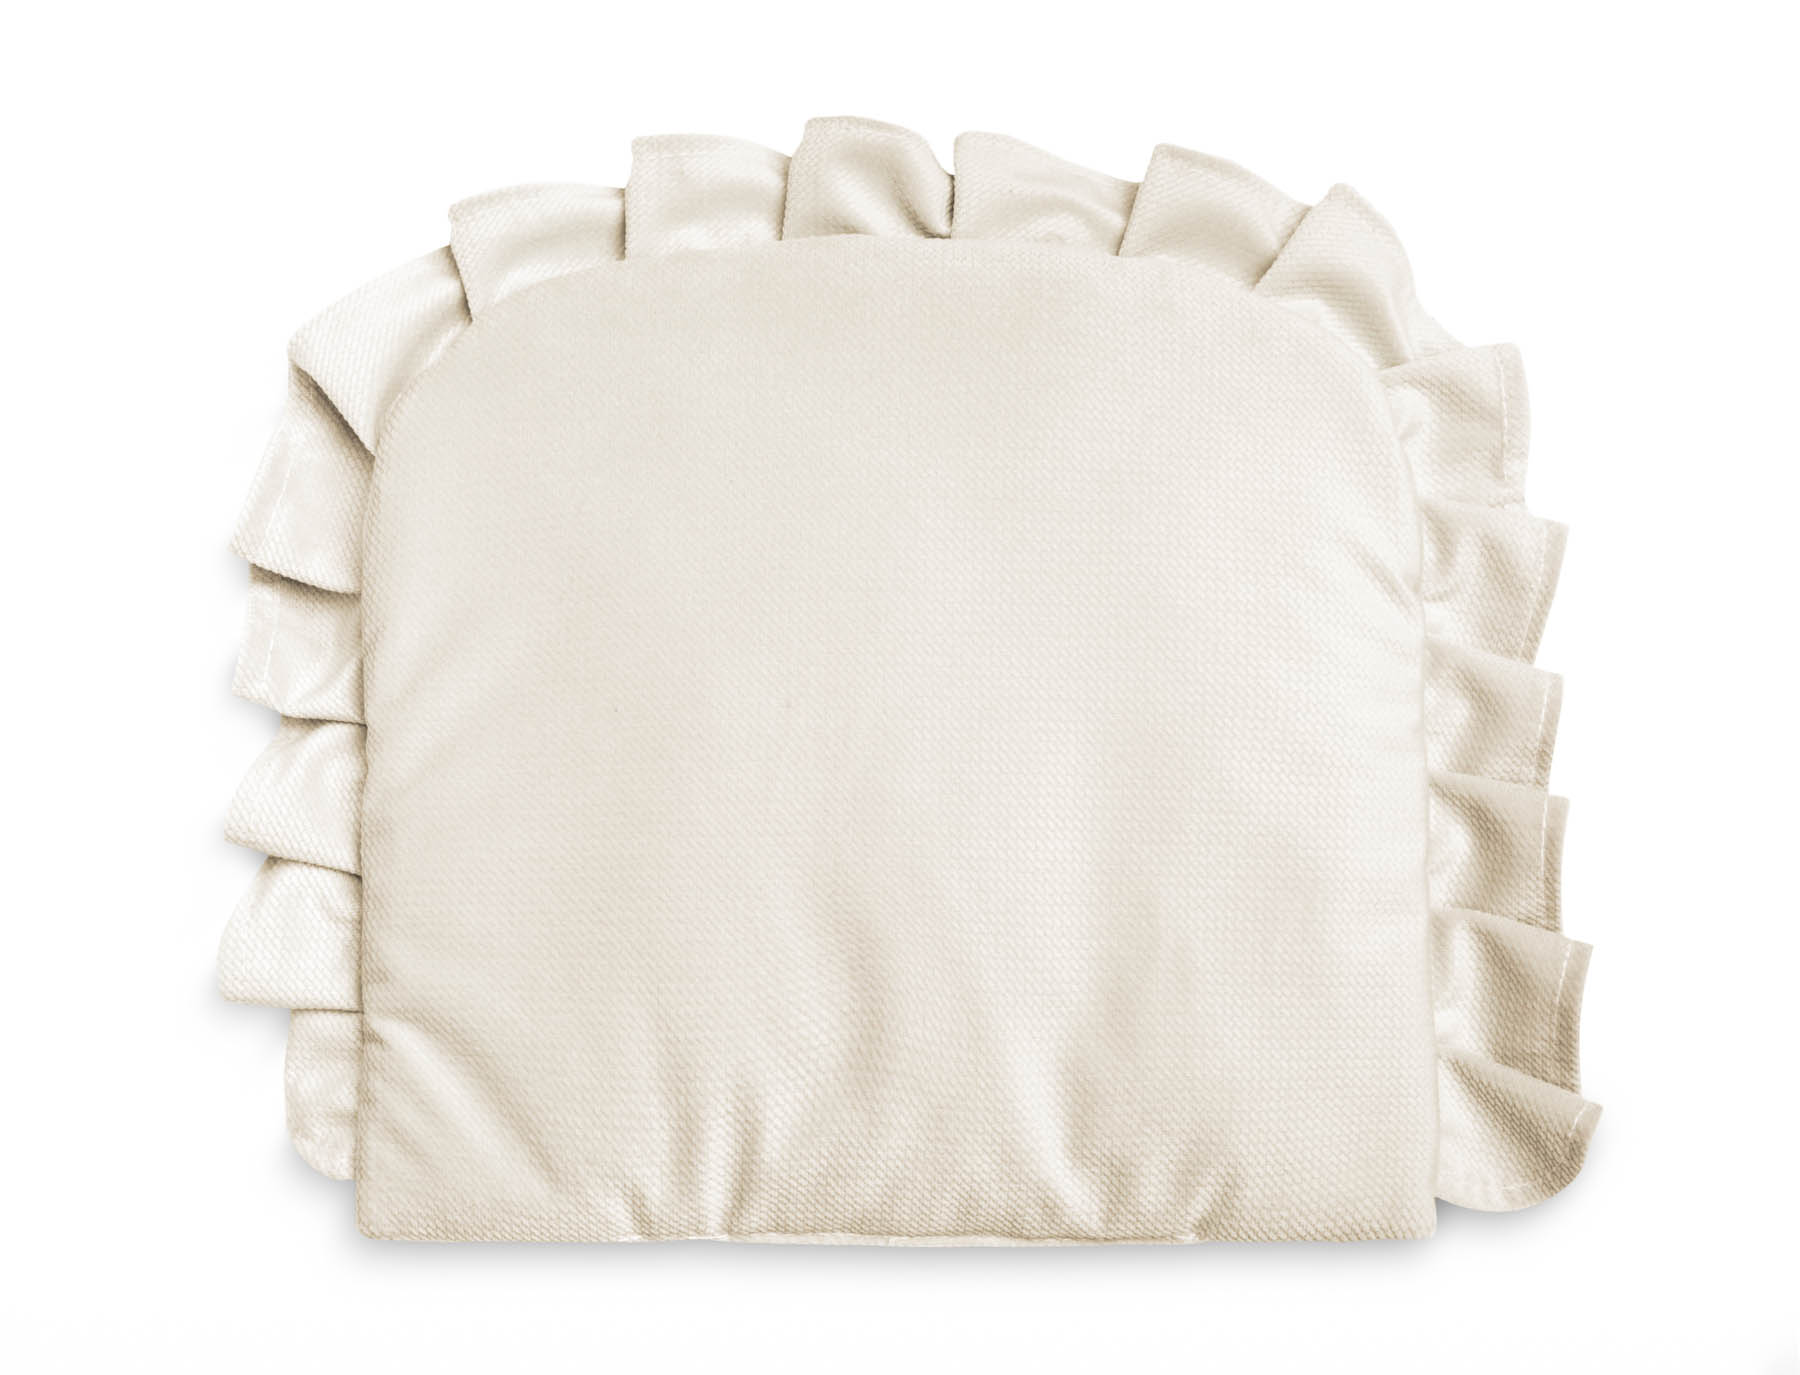 Pillow With a Frill – Velvet ivory